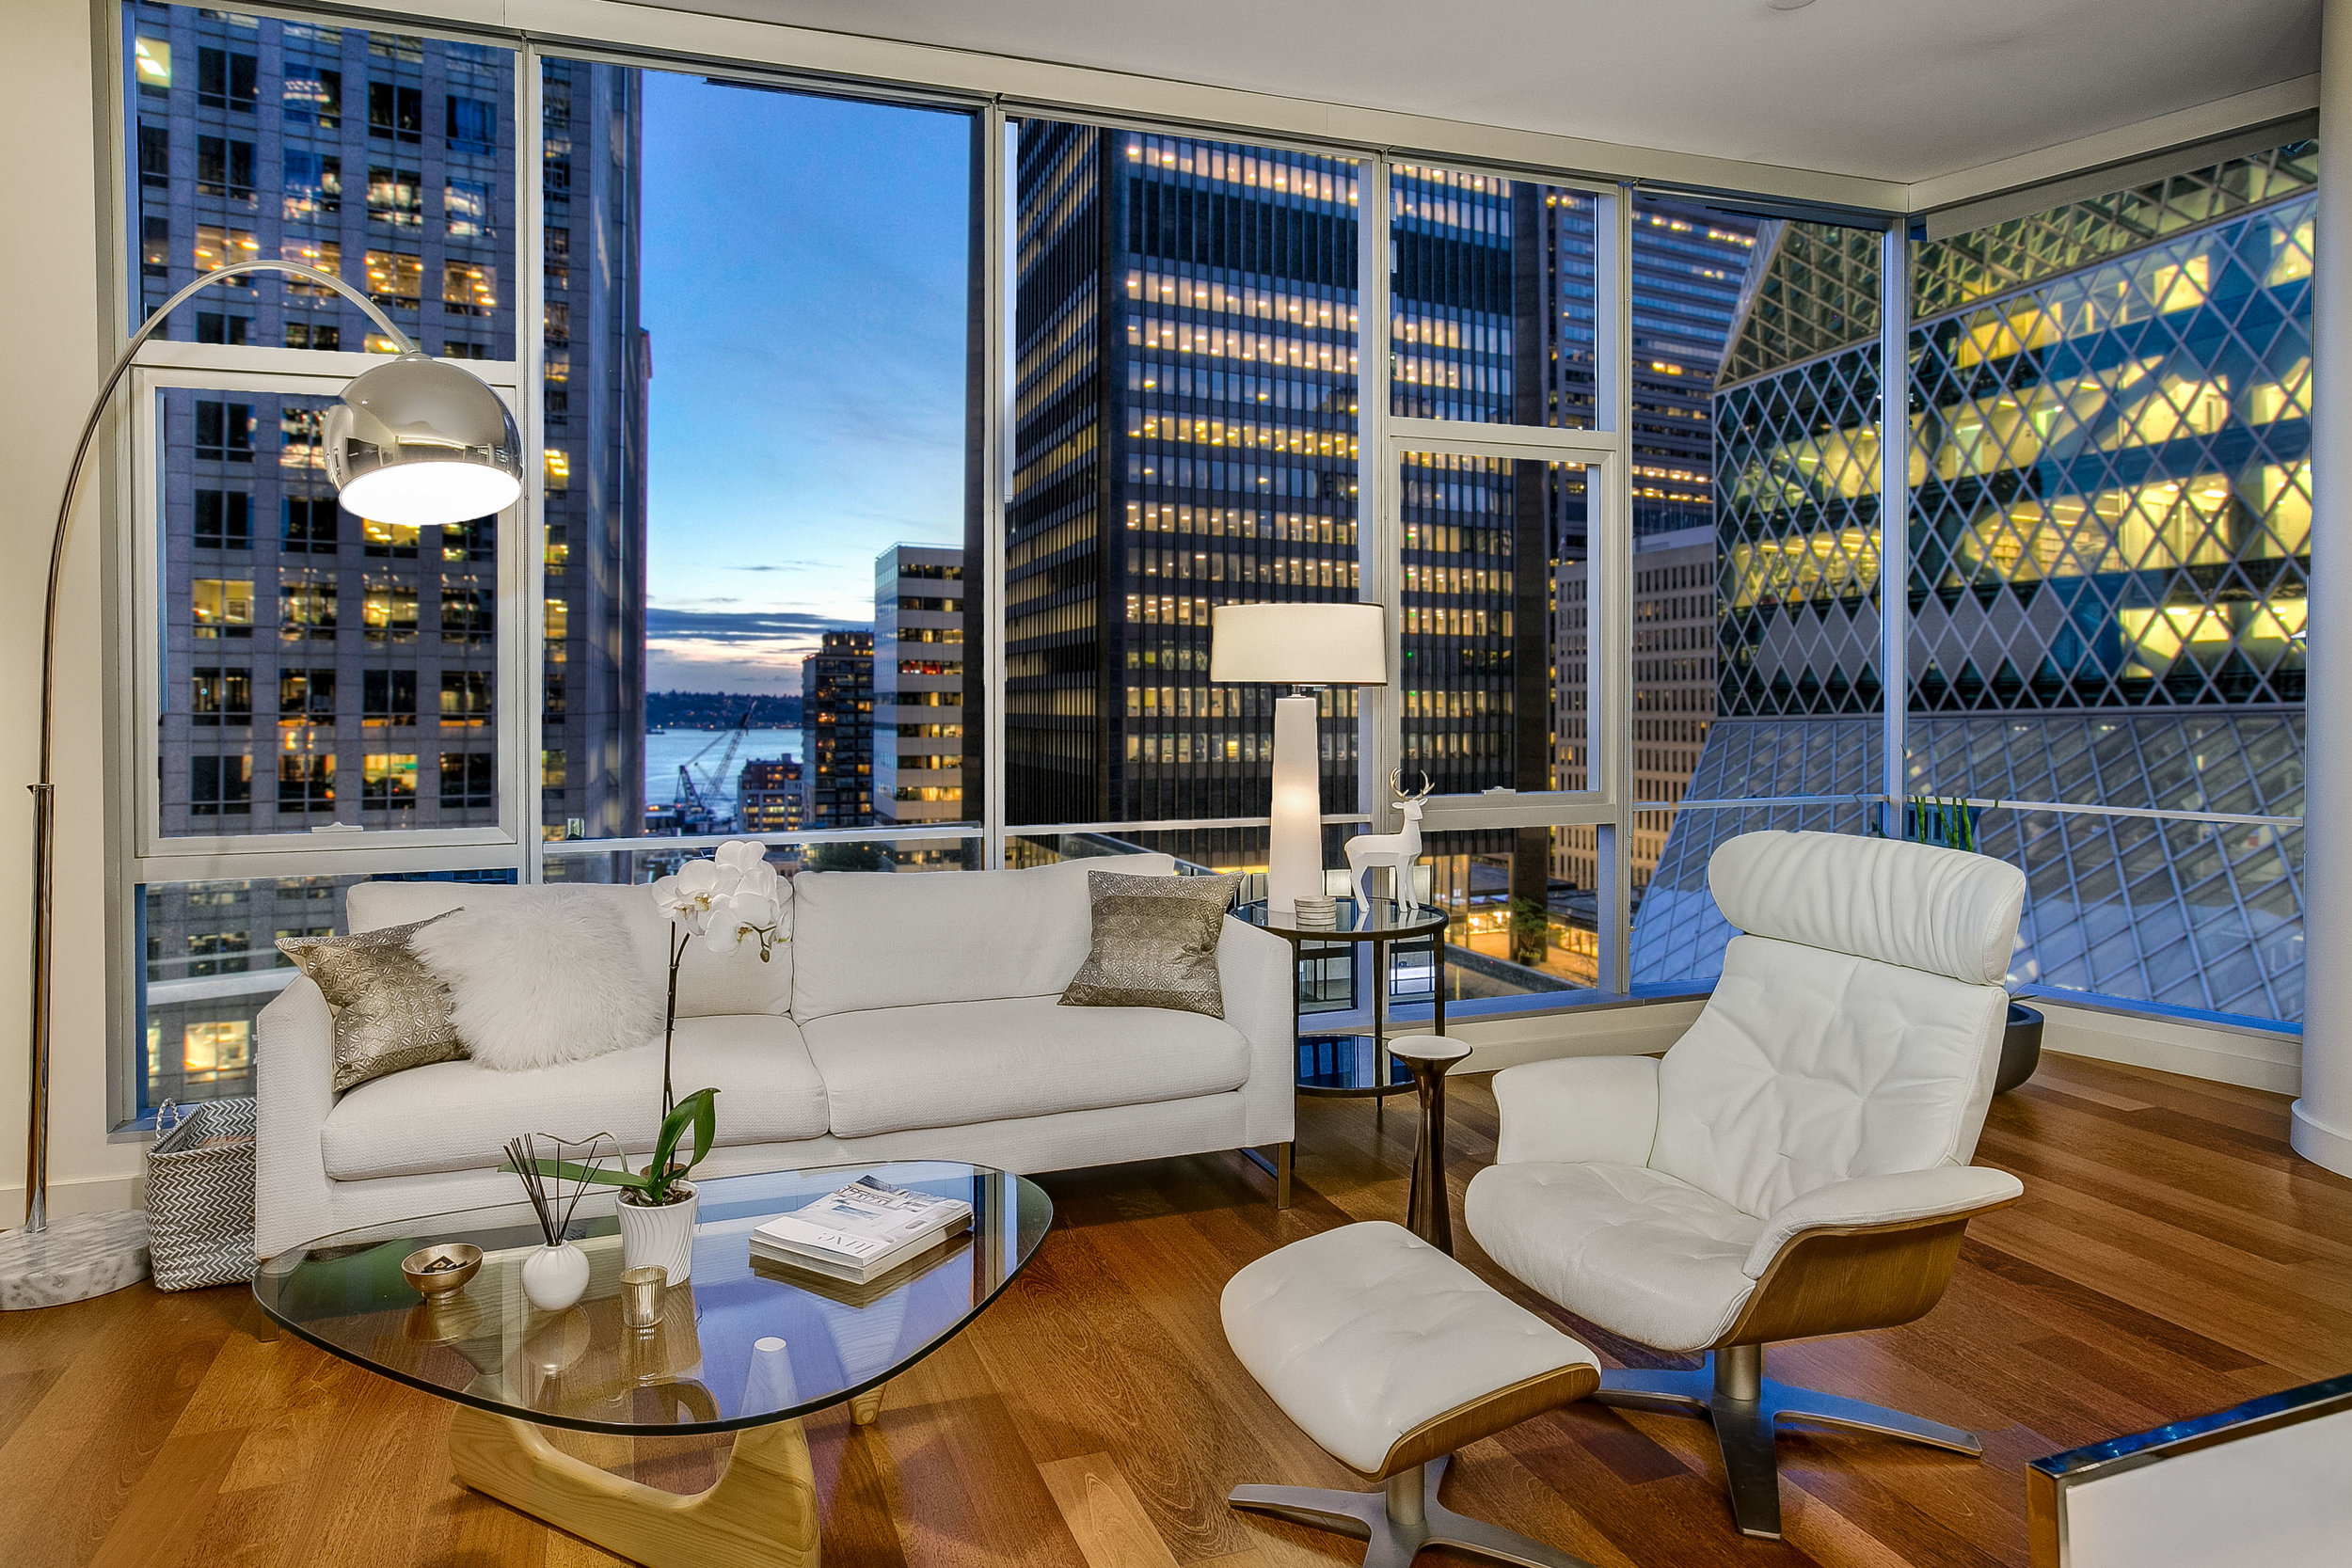 Gemstone Reflections - Welcome to the vibrant downtown location of the coveted 5th and Madison building, situated across from the stunning Rem Koolhaus-designed Seattle Library. Live surrounded by the sparkle of the city reflected off the library's diamond facets.